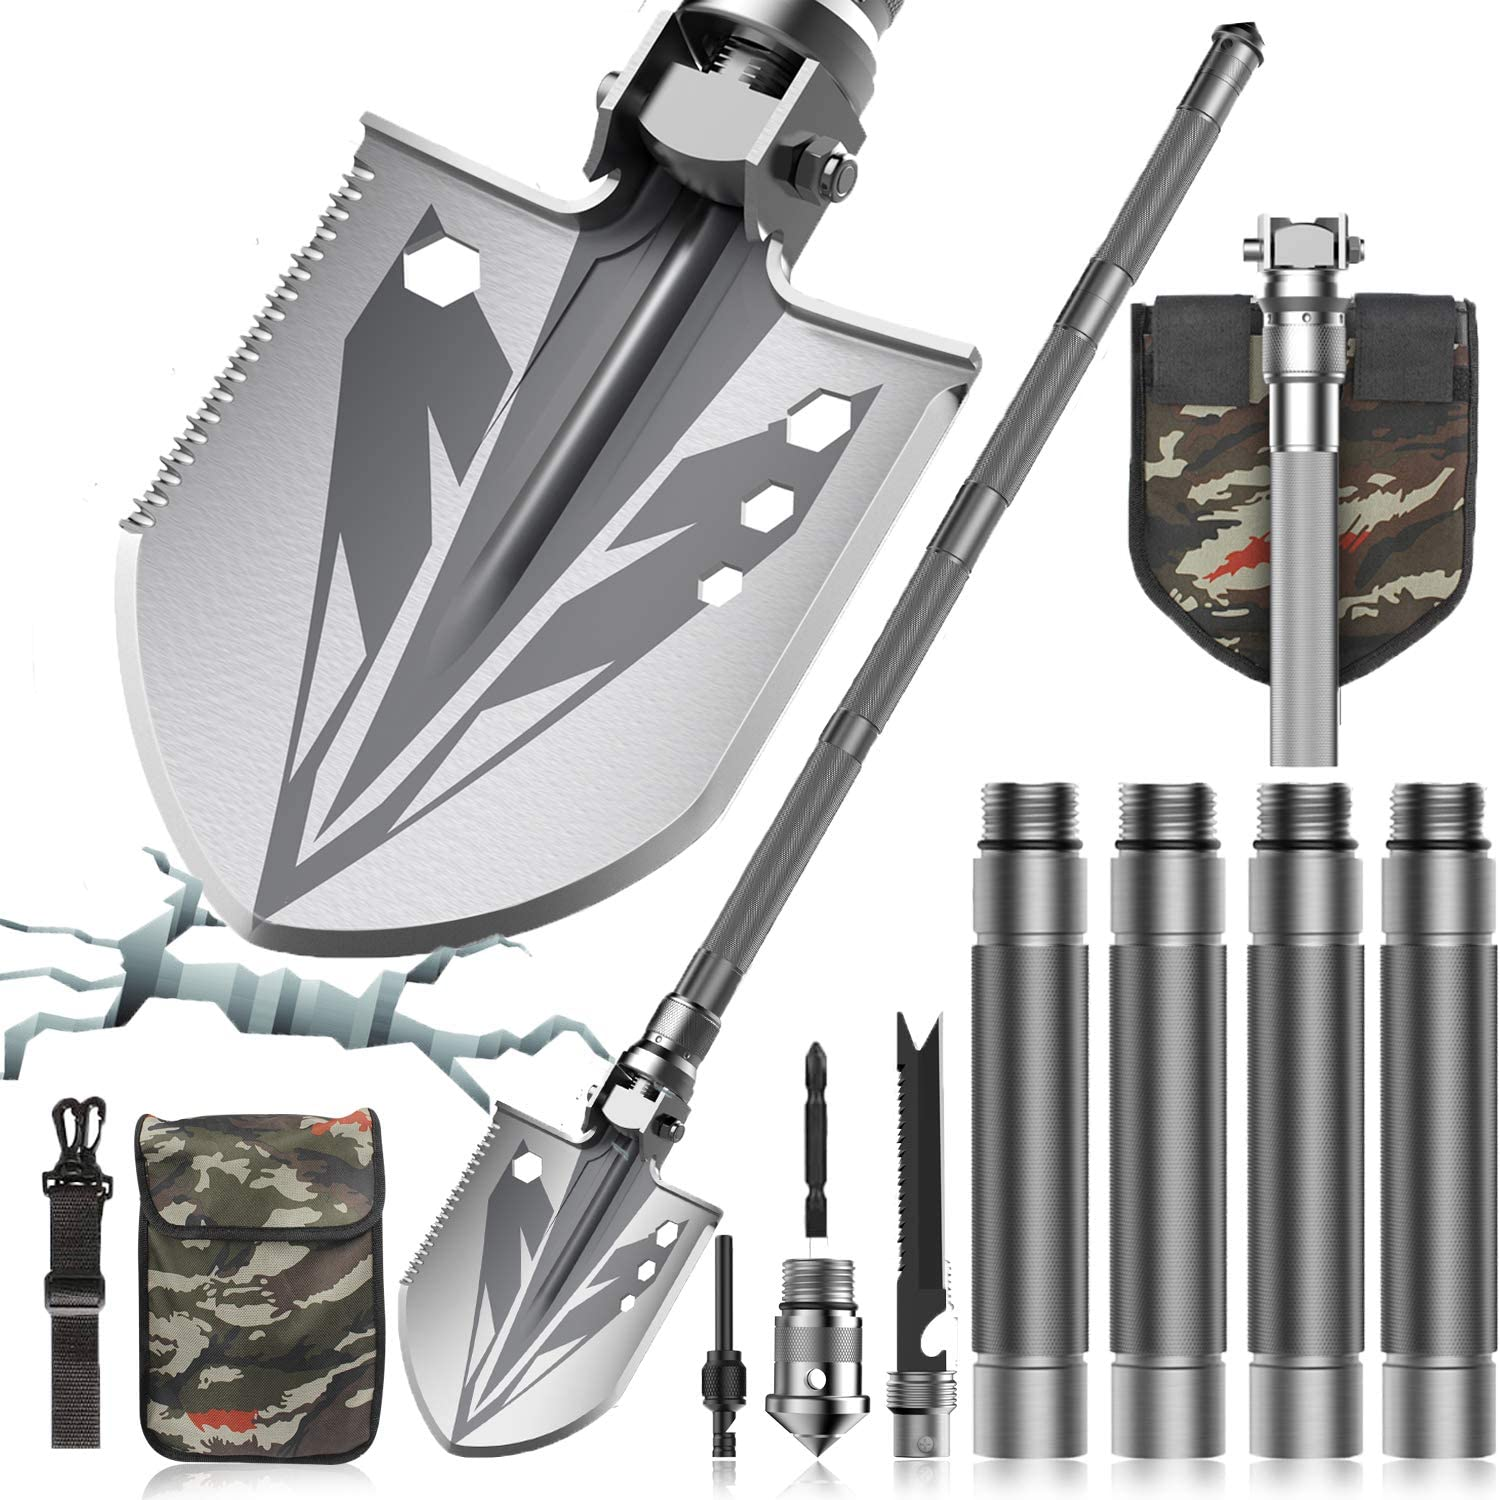 Survival Shovel, Tactical Shovel by Sallia- Survival Shovel Multitool - Ultimate Survival Tool - Camping Shovel, Folding Shovel - Survival Shovel Multifunctional, 37.6in Shovel